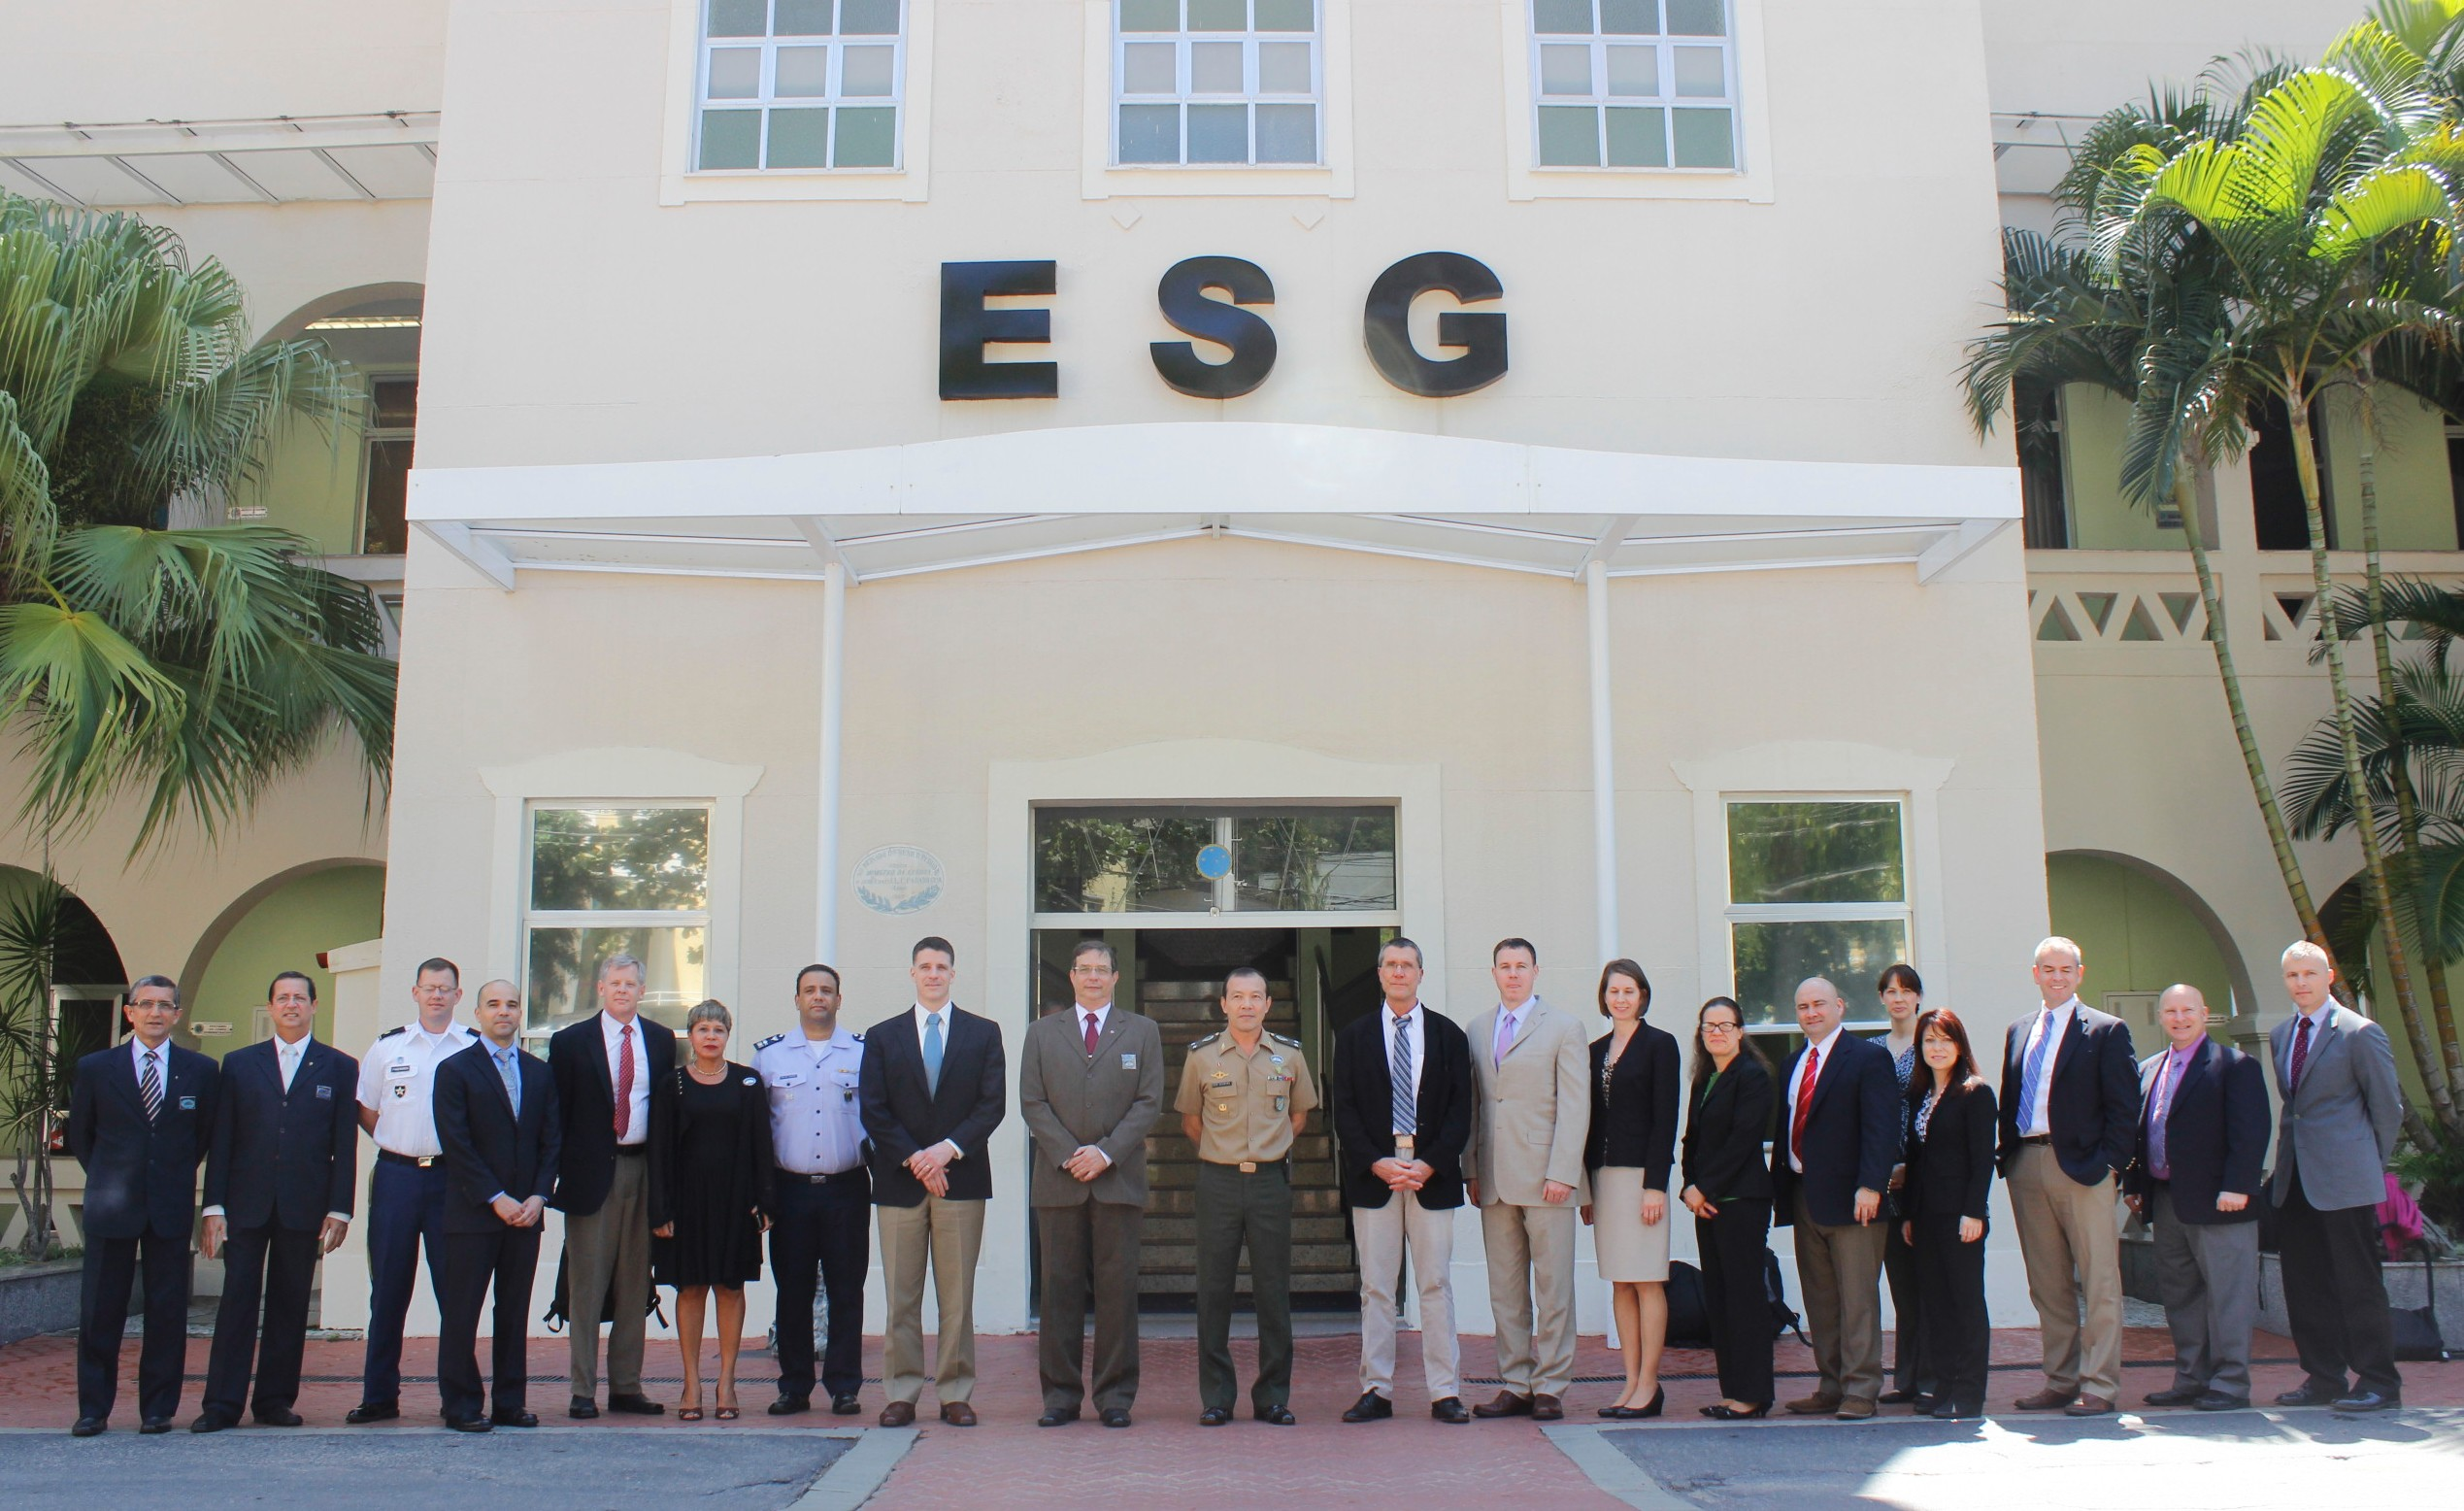 National War College visita a ESG